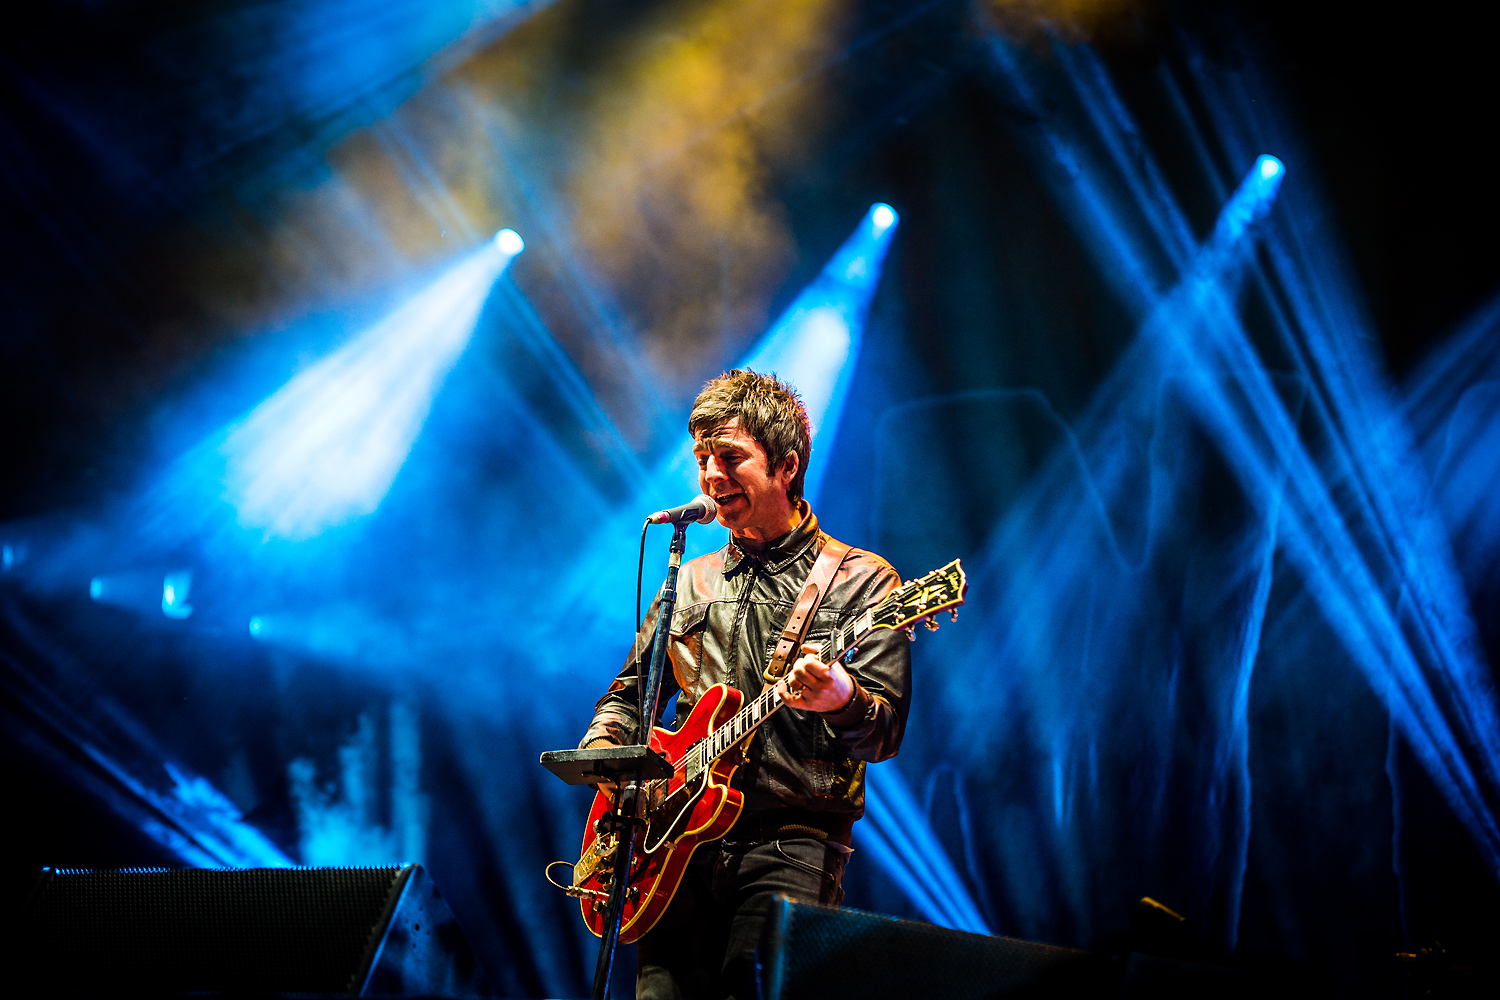 BKS 692 - Noel Gallagher's High Flying Birds